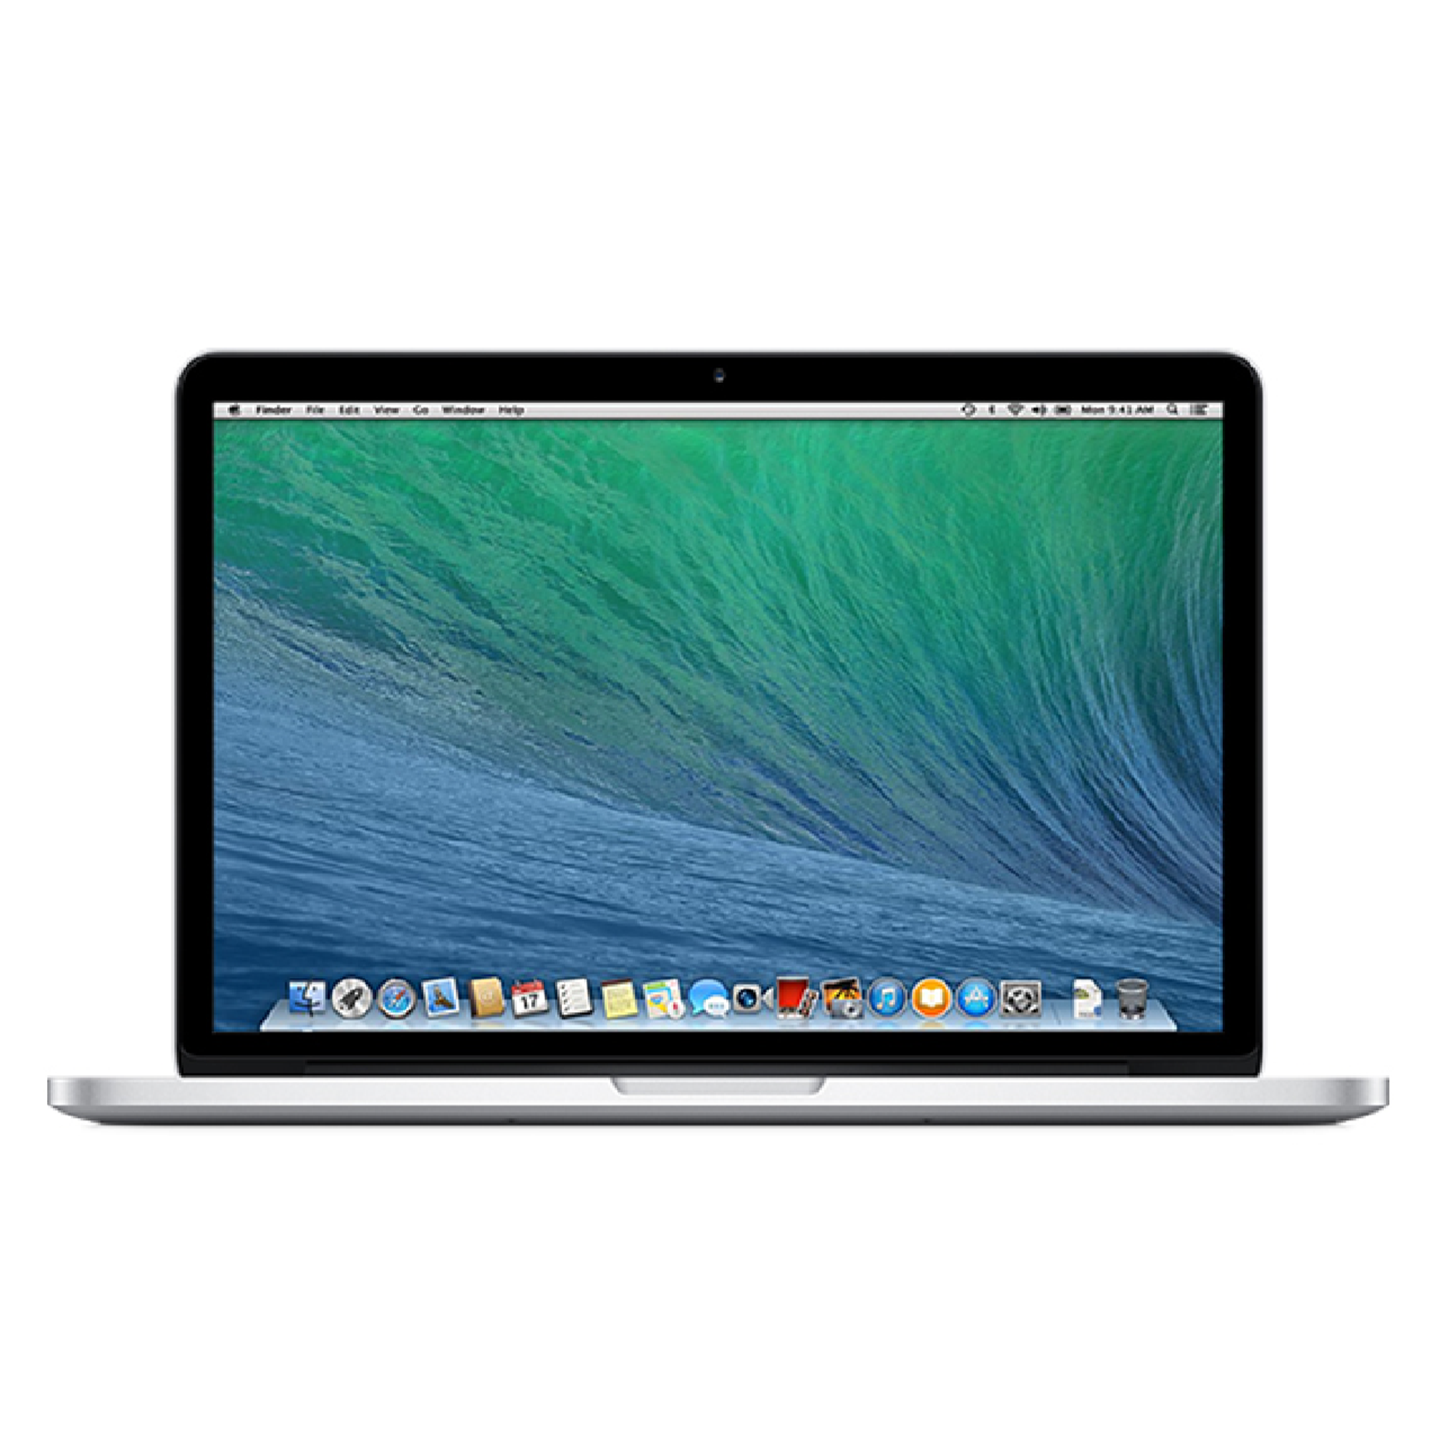 MacBook Pro (Retina, 13-inch, Mid 2014)Core i7/8GB/SSD256GB E766